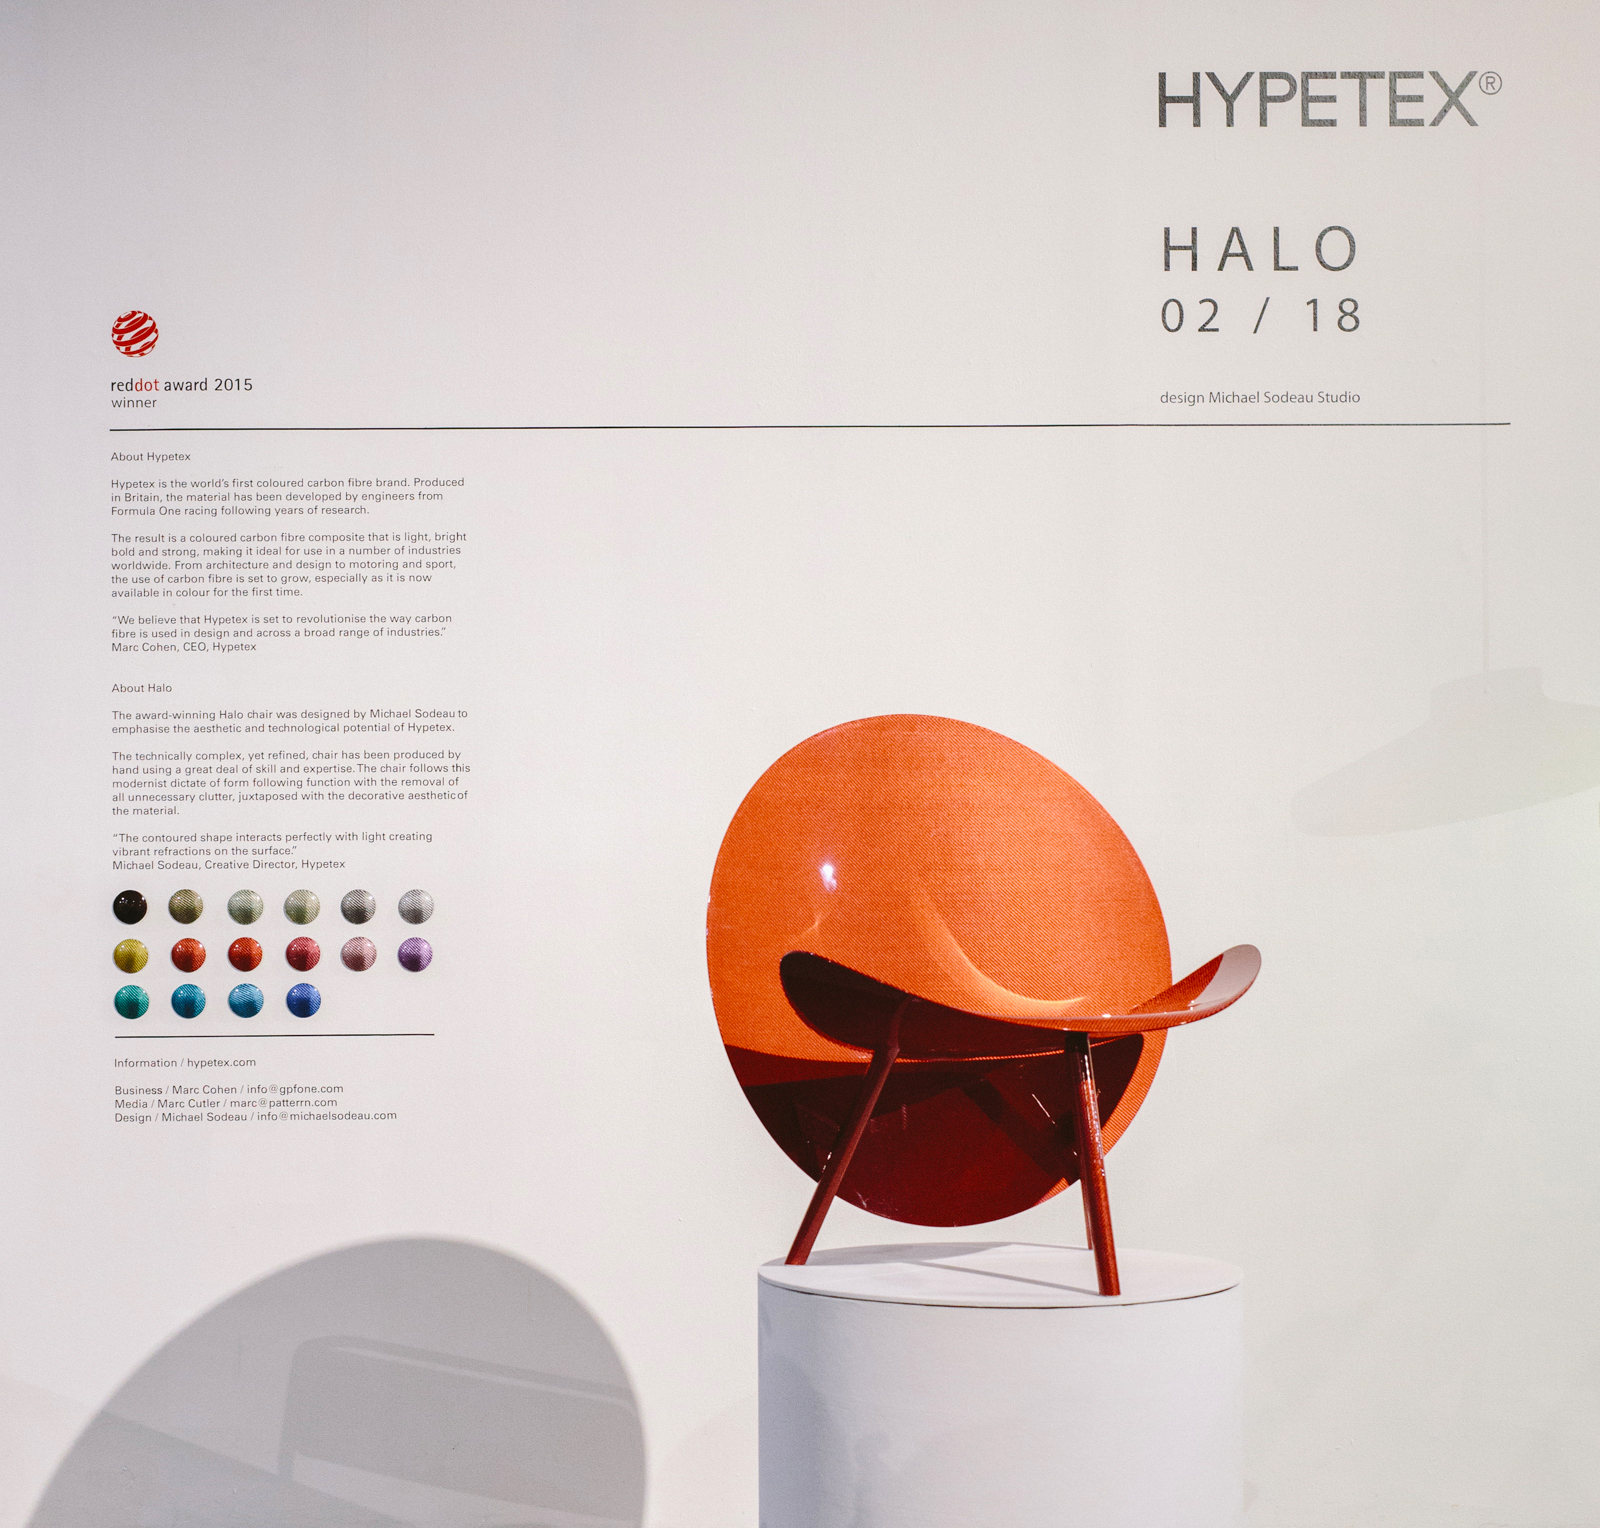 Hypetex to Star at LA Design Show